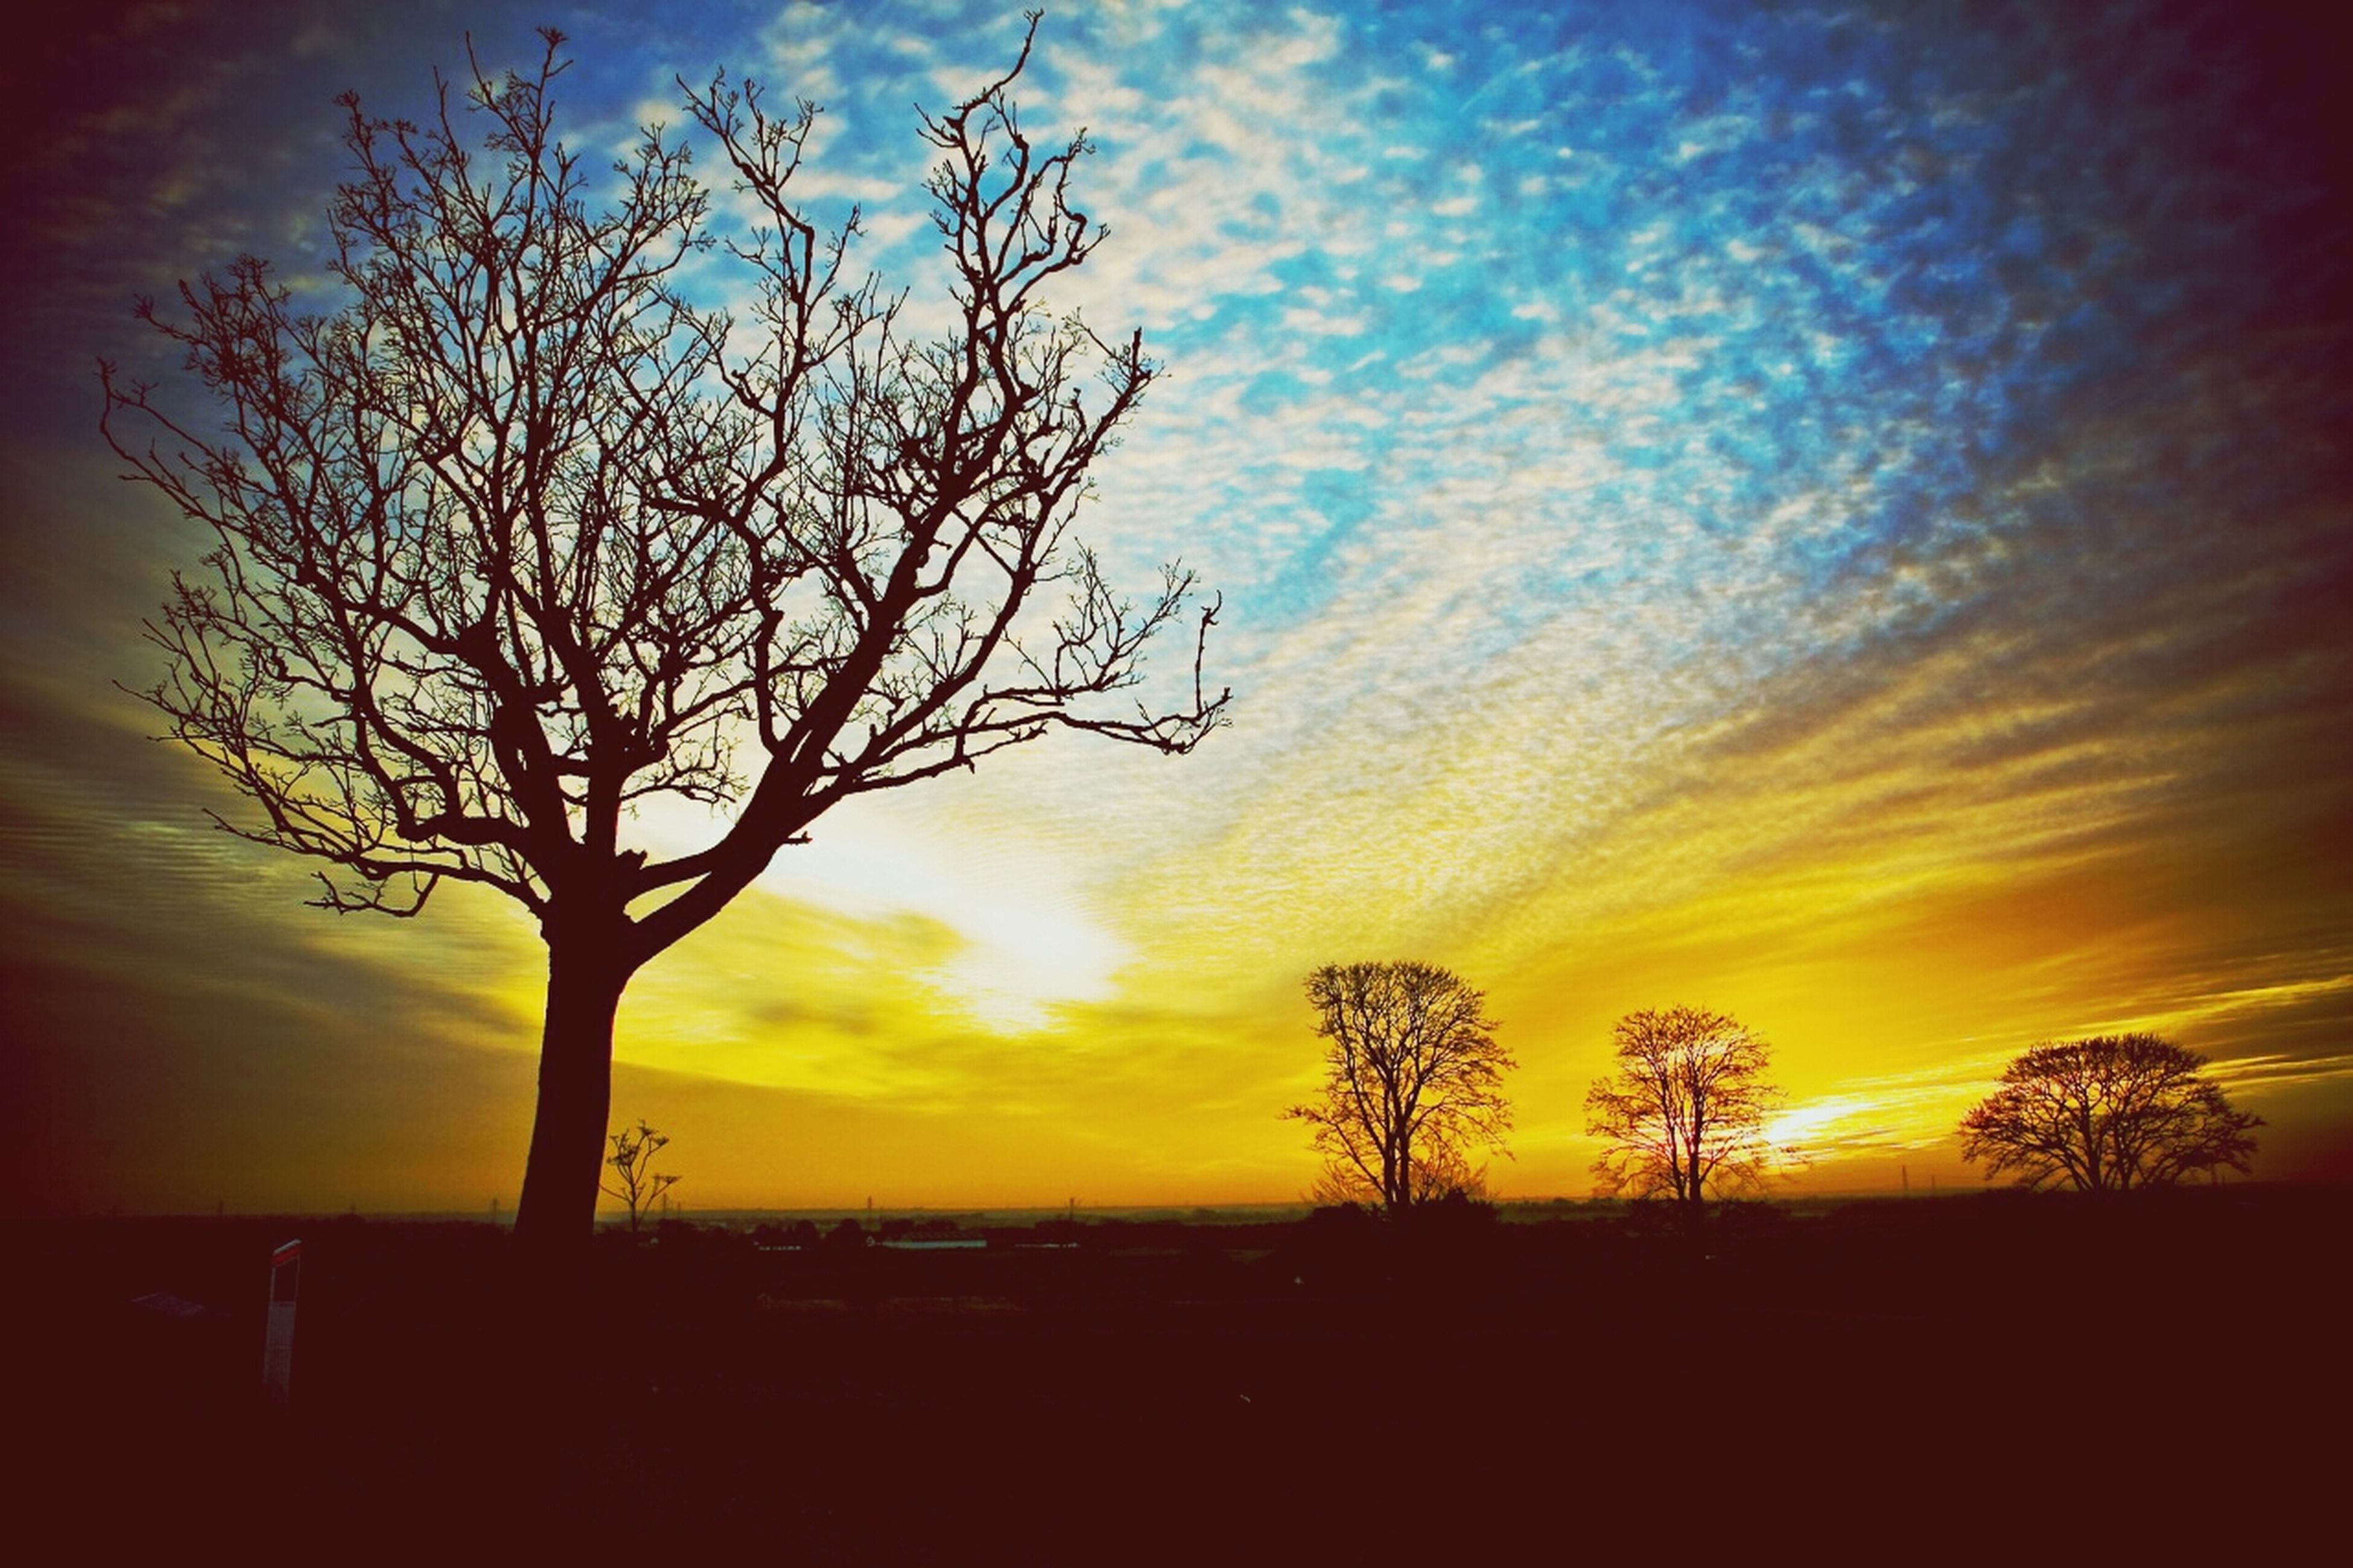 sunset, silhouette, sky, beauty in nature, tranquil scene, tranquility, scenics, tree, bare tree, orange color, nature, cloud - sky, idyllic, landscape, branch, dramatic sky, growth, cloud, field, majestic